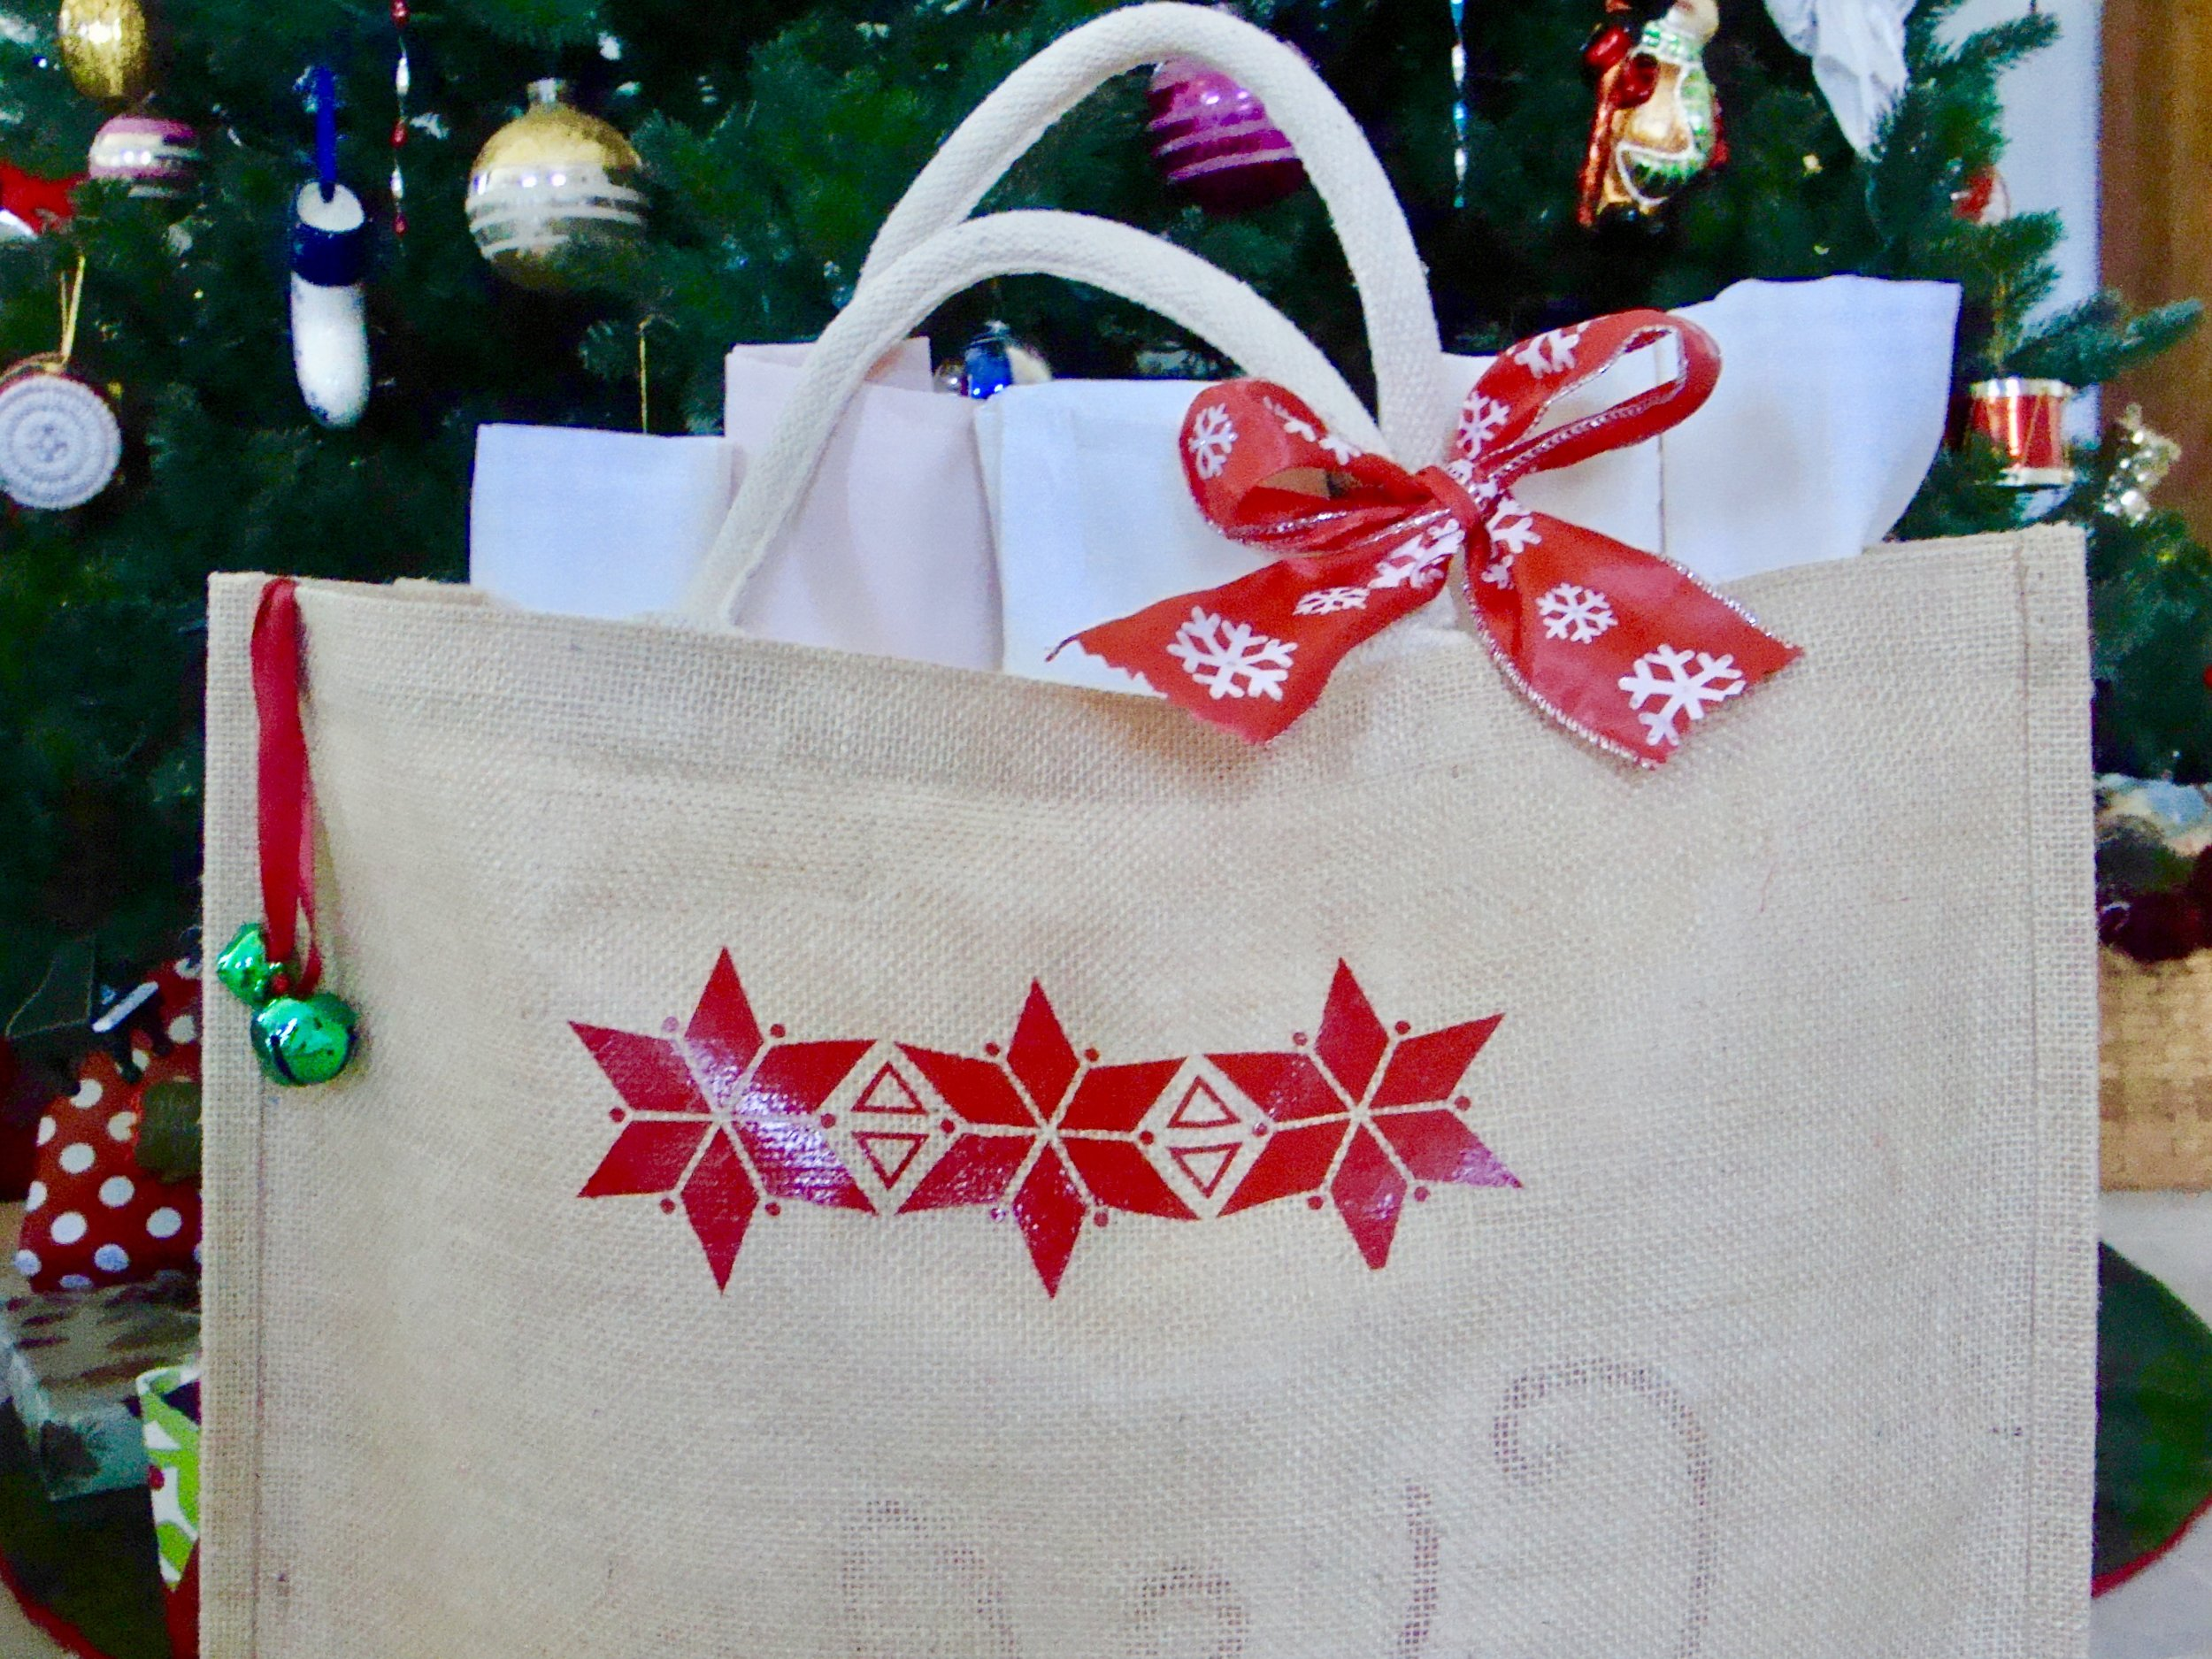 Pillows packaged in Tote under the Christmas Tree